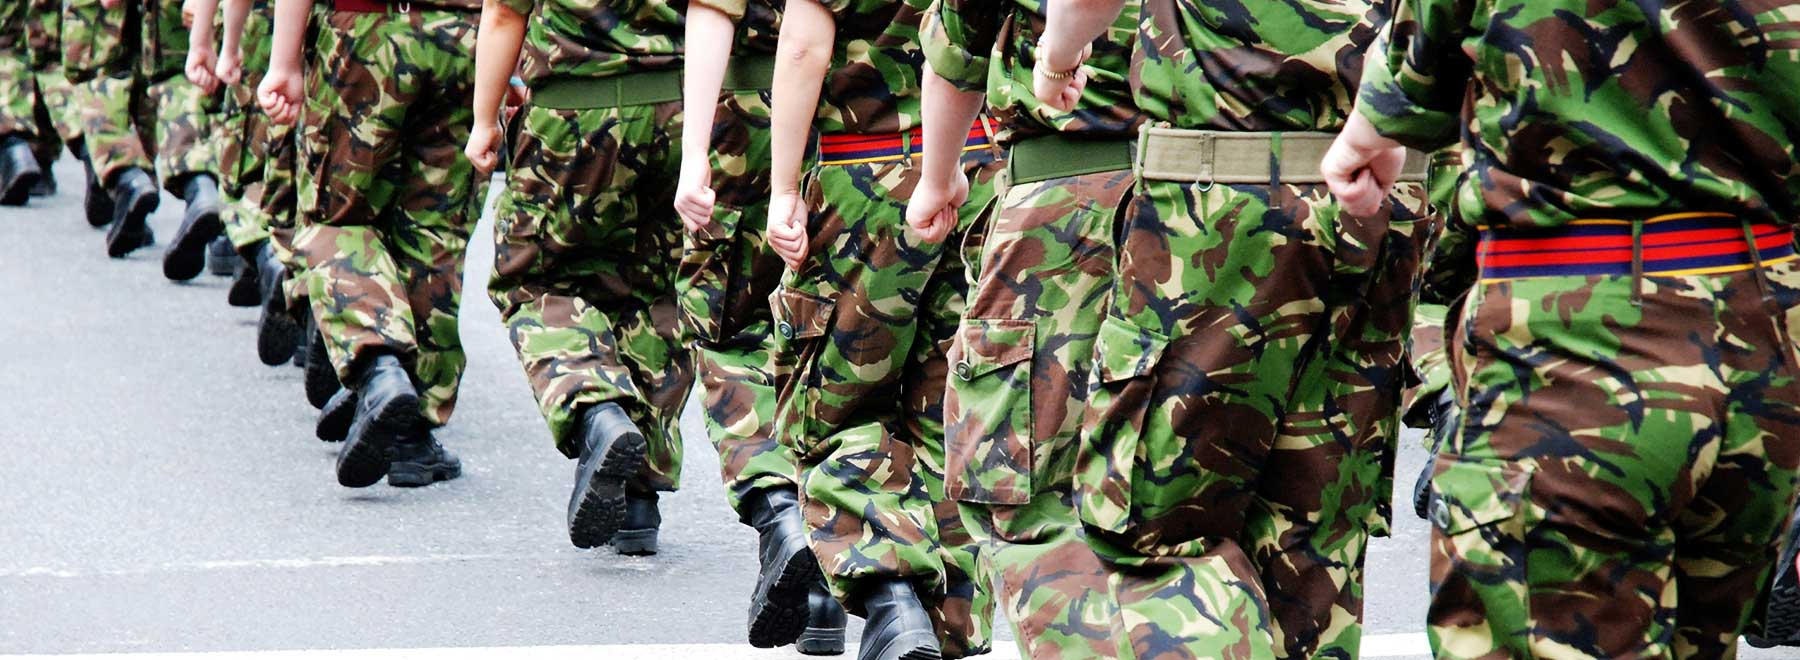 Would a career in the armed forces suit me?